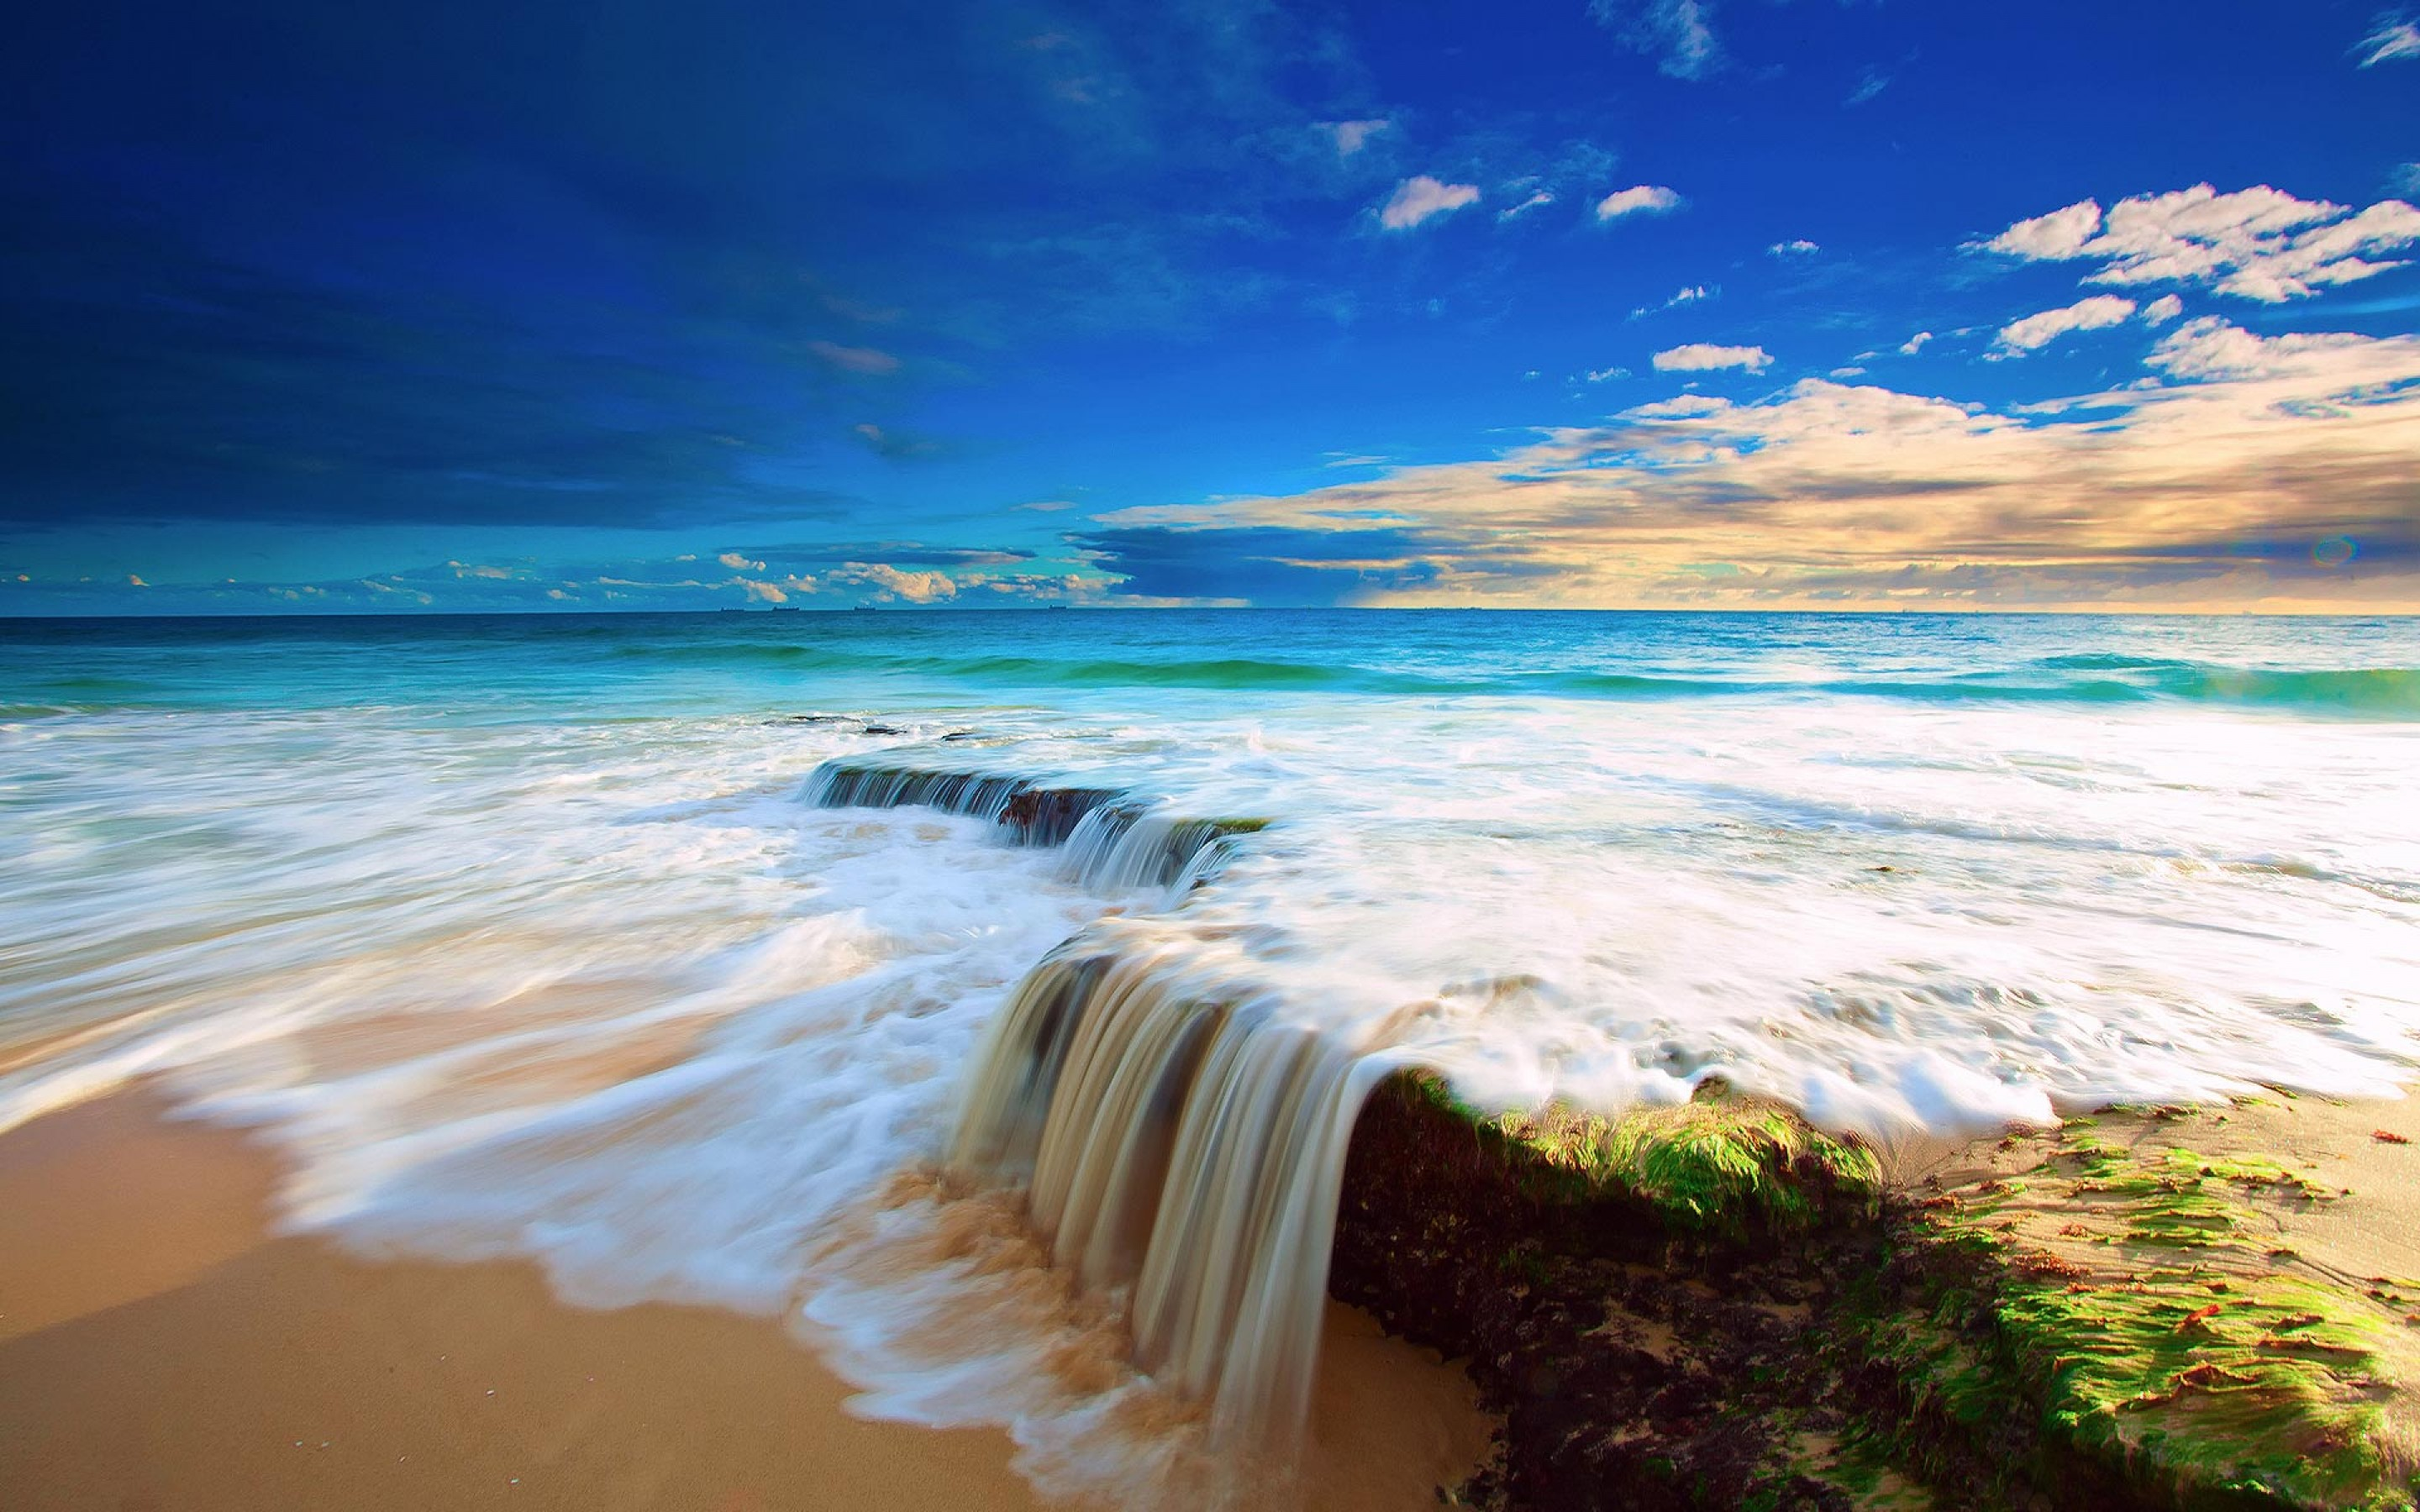 Hawaii Beach Waves HD Wallpaper 1835 Frenziacom 2880x1800